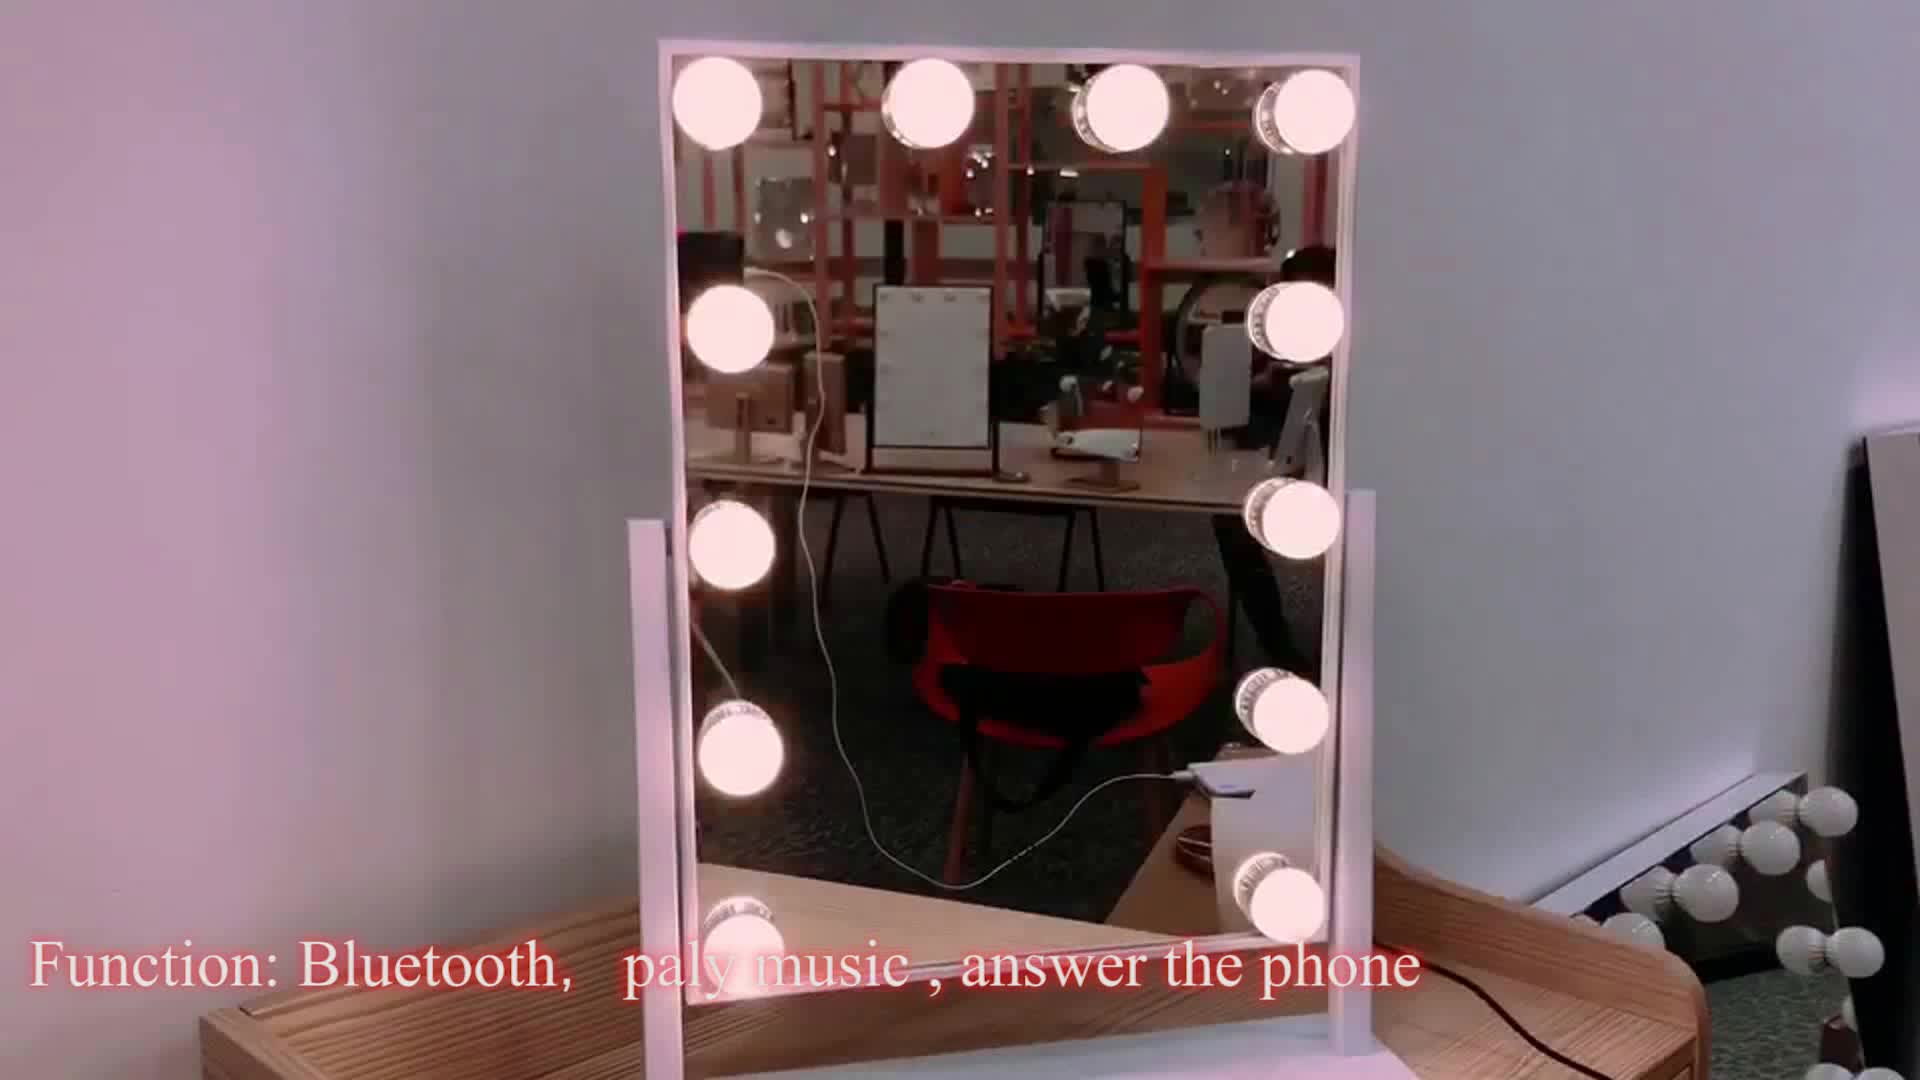 12 LED Bulbs Hot sale  hollywood style mirror light Makeup Cosmetic Mirrors with bluetooth speaker